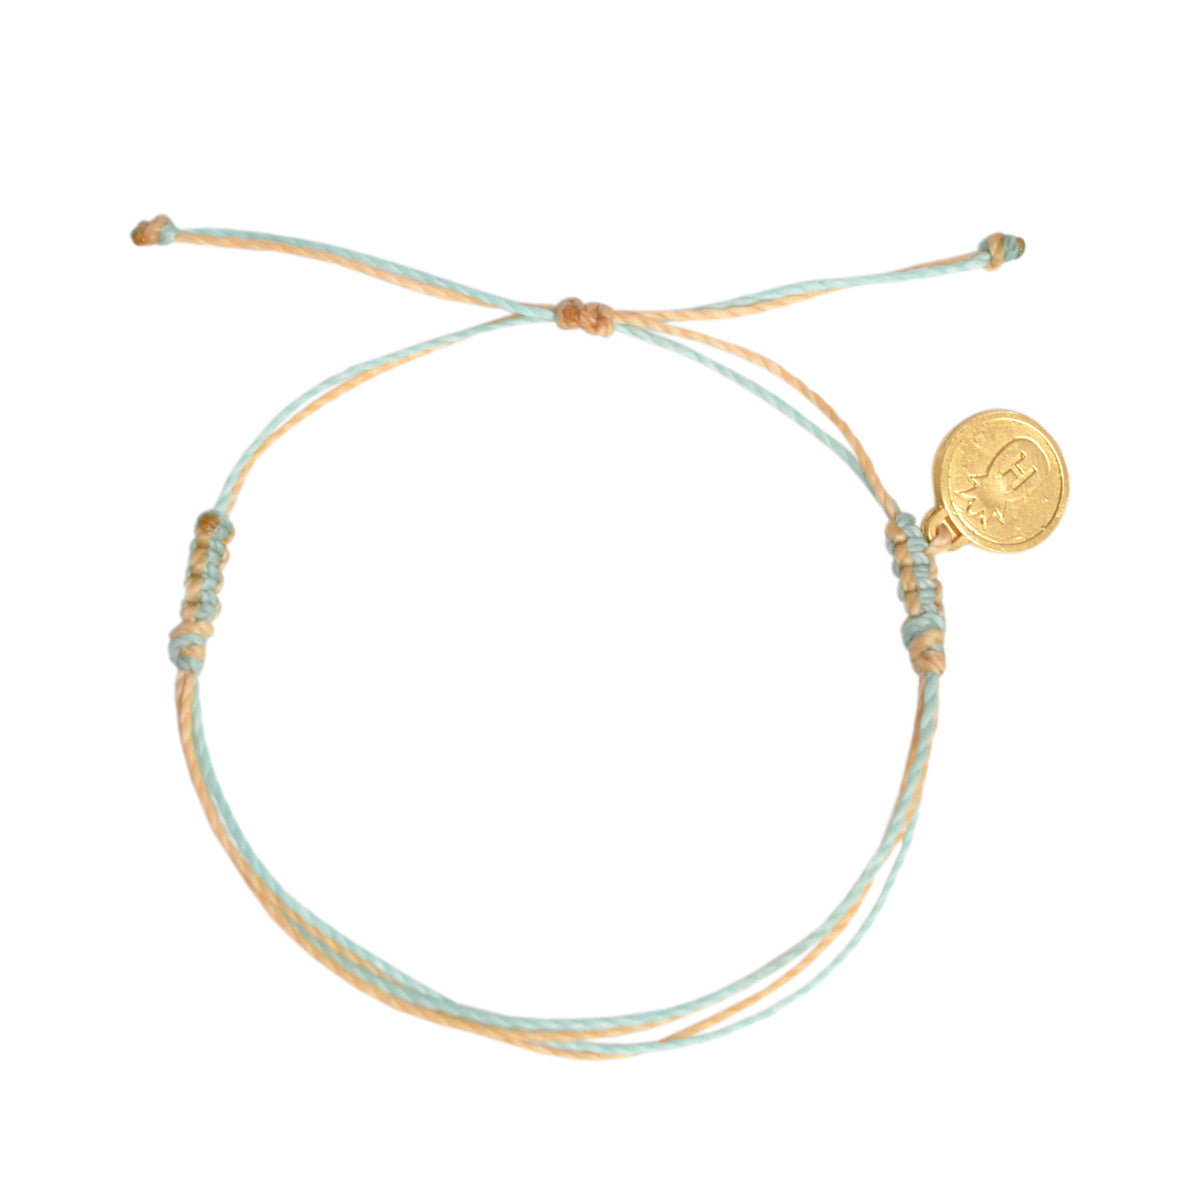 Wholesale Beachy Sand String Bracelet